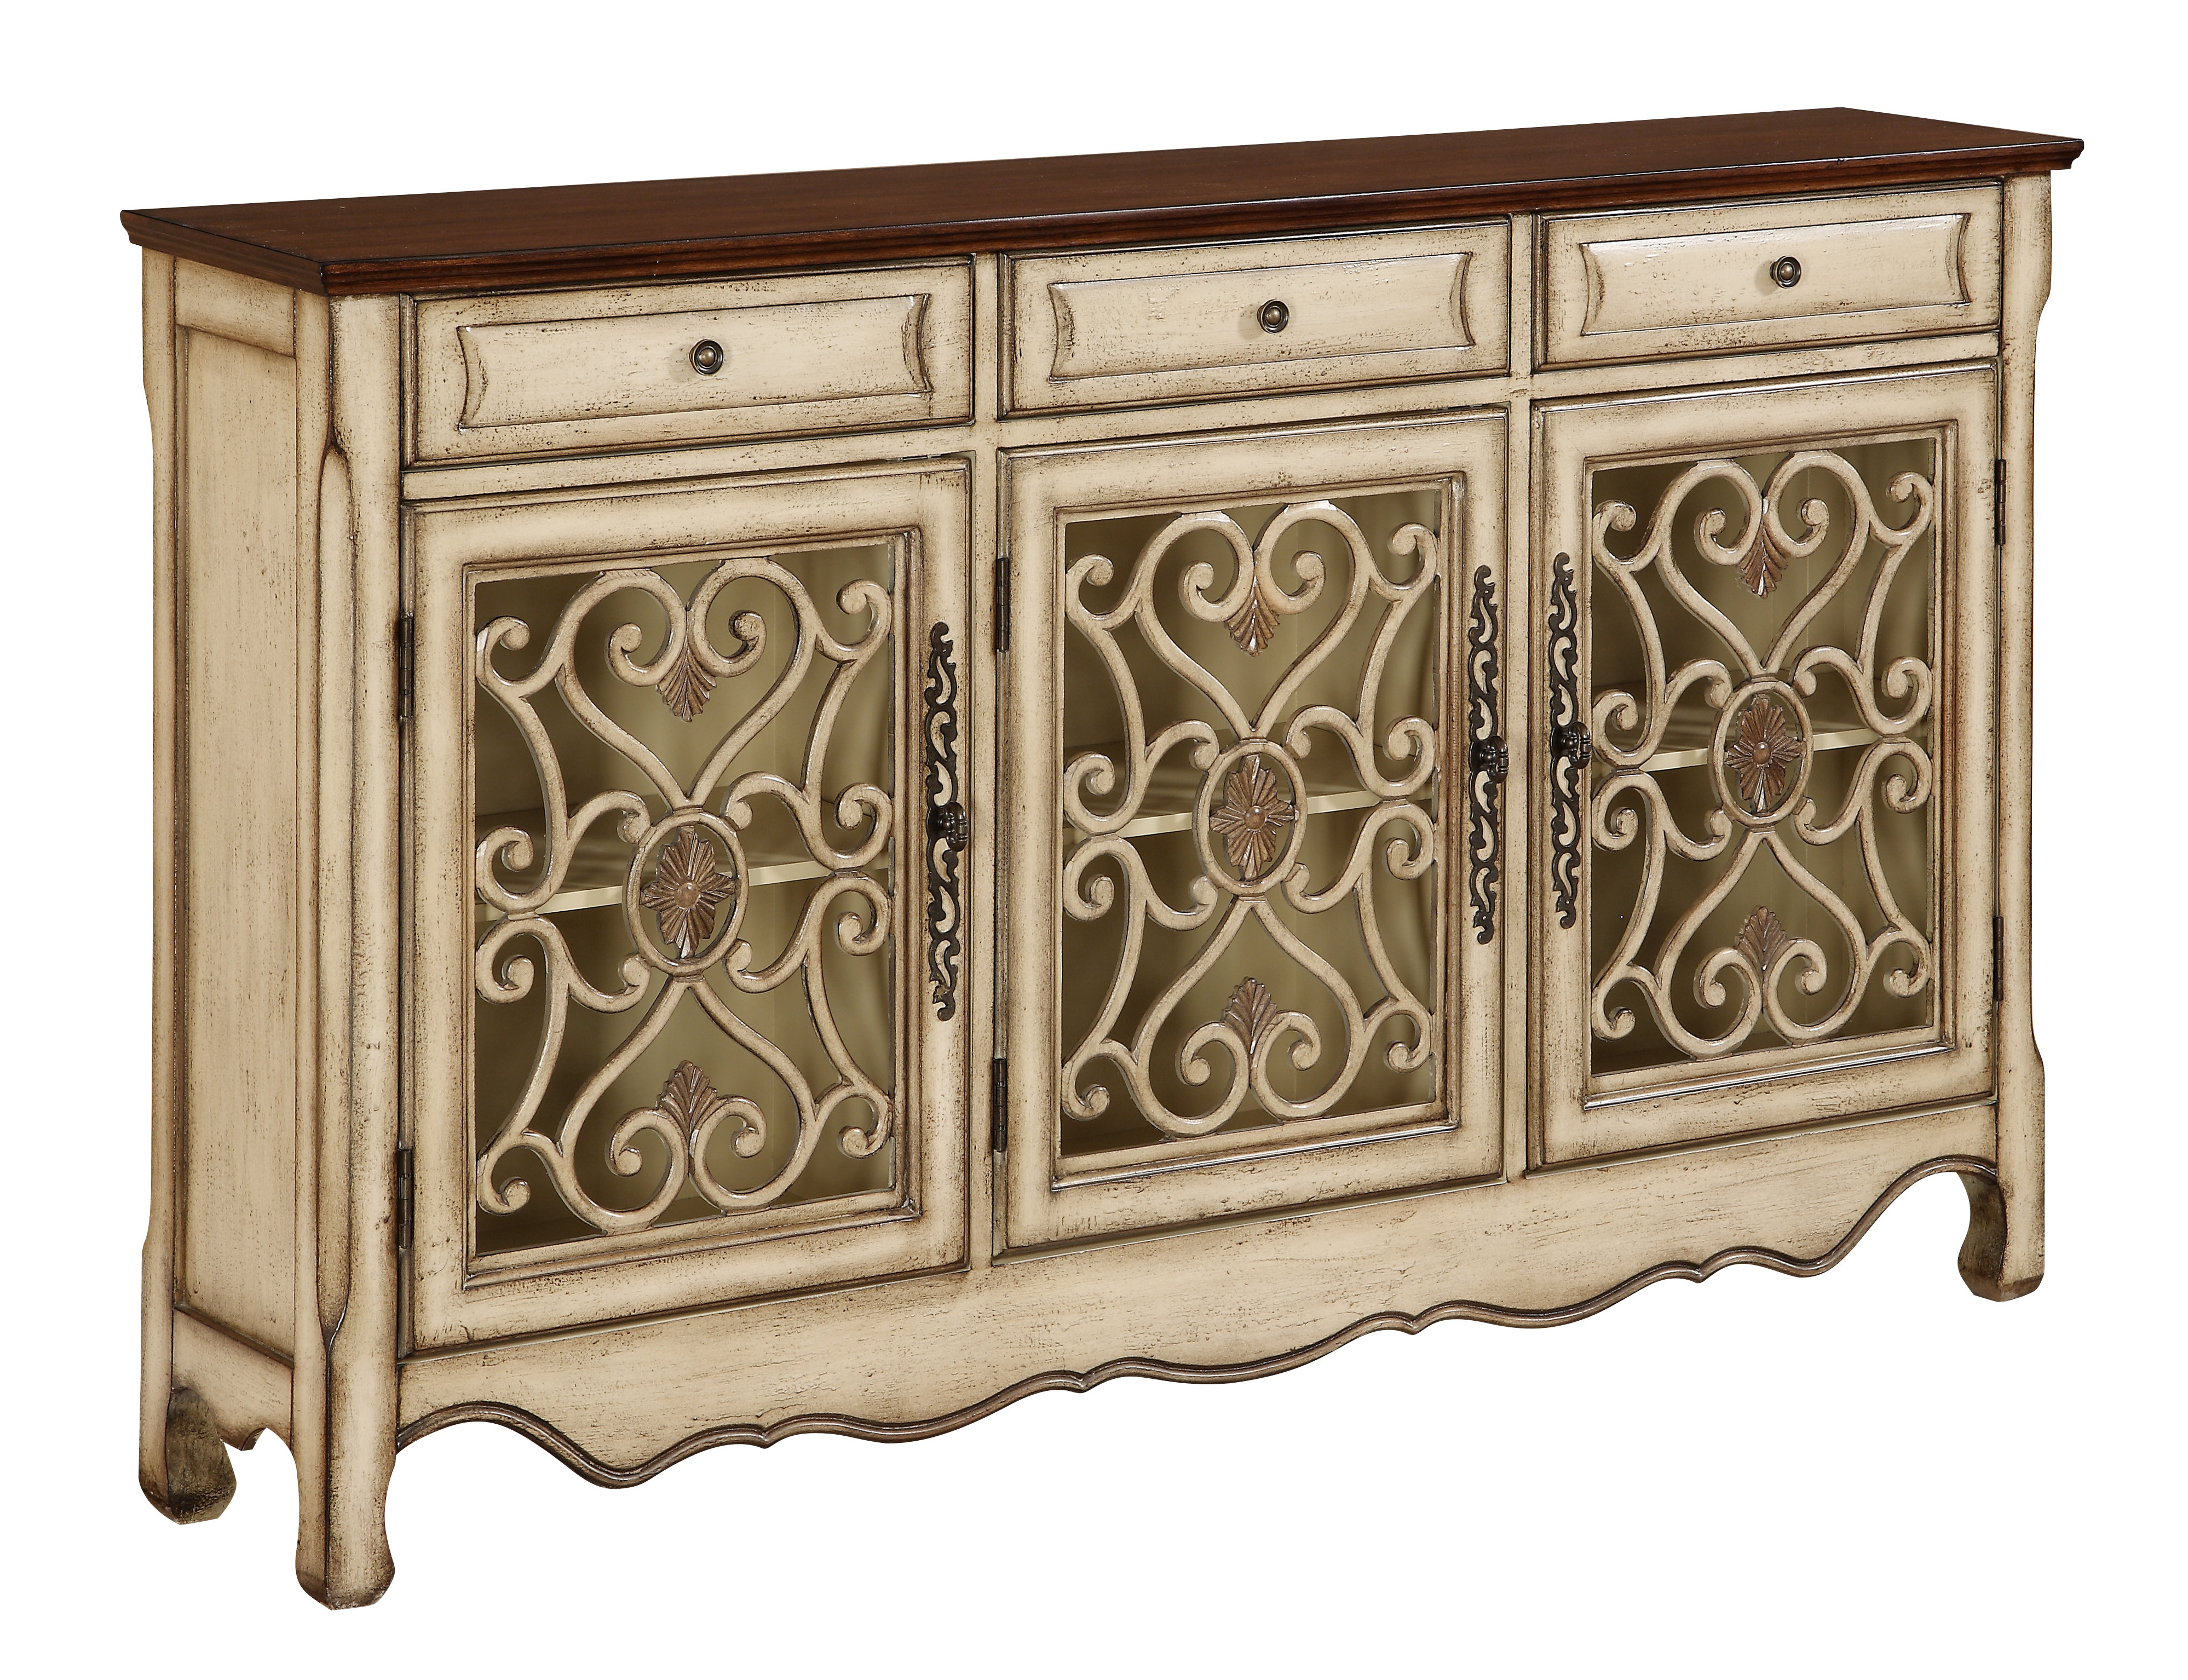 Farmhouse & Rustic Sideboards & Buffets | Birch Lane With Seiling Sideboards (View 17 of 20)